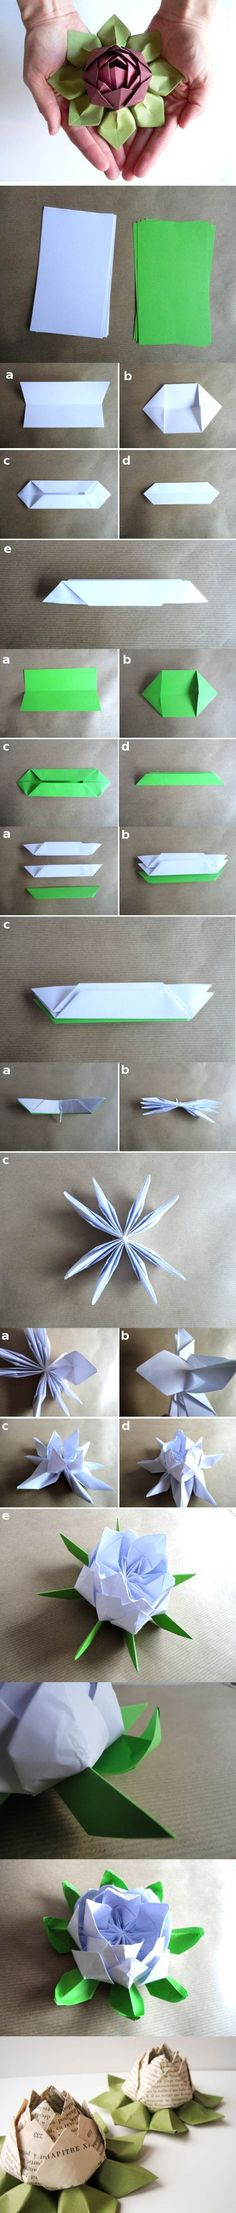 DIY Origami Lotus Flower | iCreativeIdeas.com Follow Us on Facebook -->…